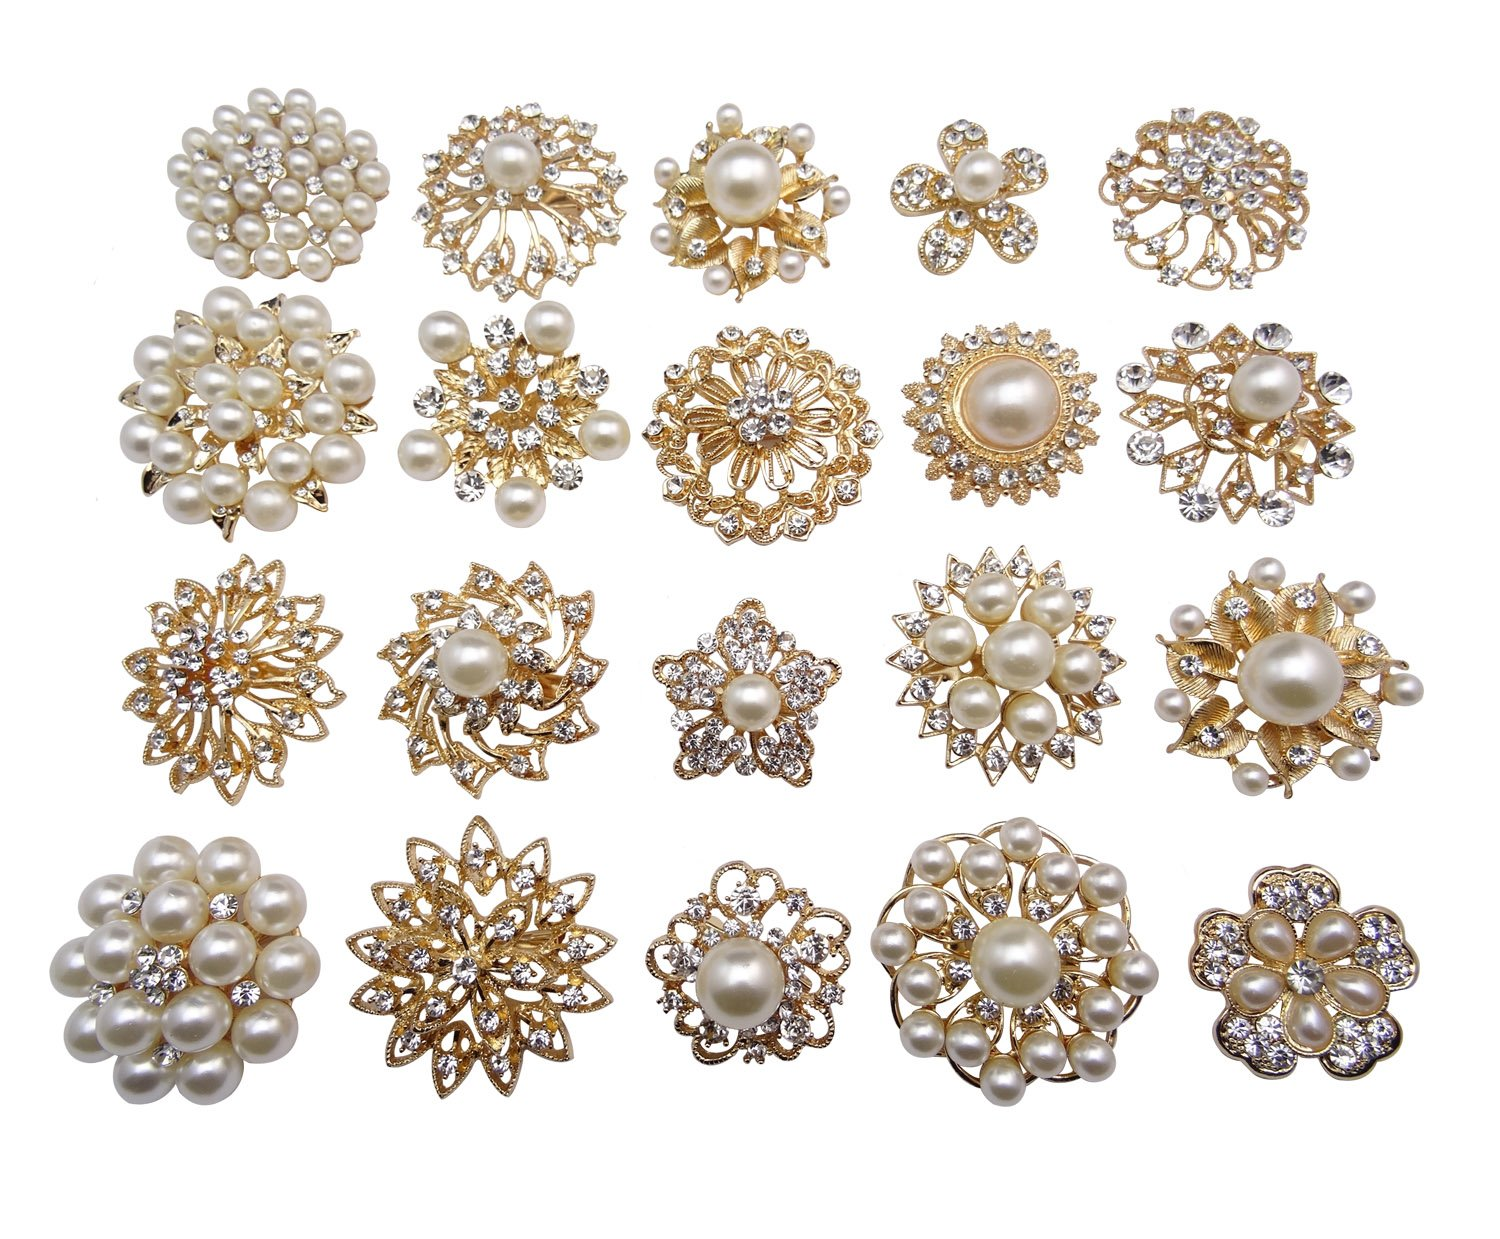 L'vow Gold Crystal Pearl Brooches Brooch Pins Wedding Corsage Bouquet Kit Pack of 12